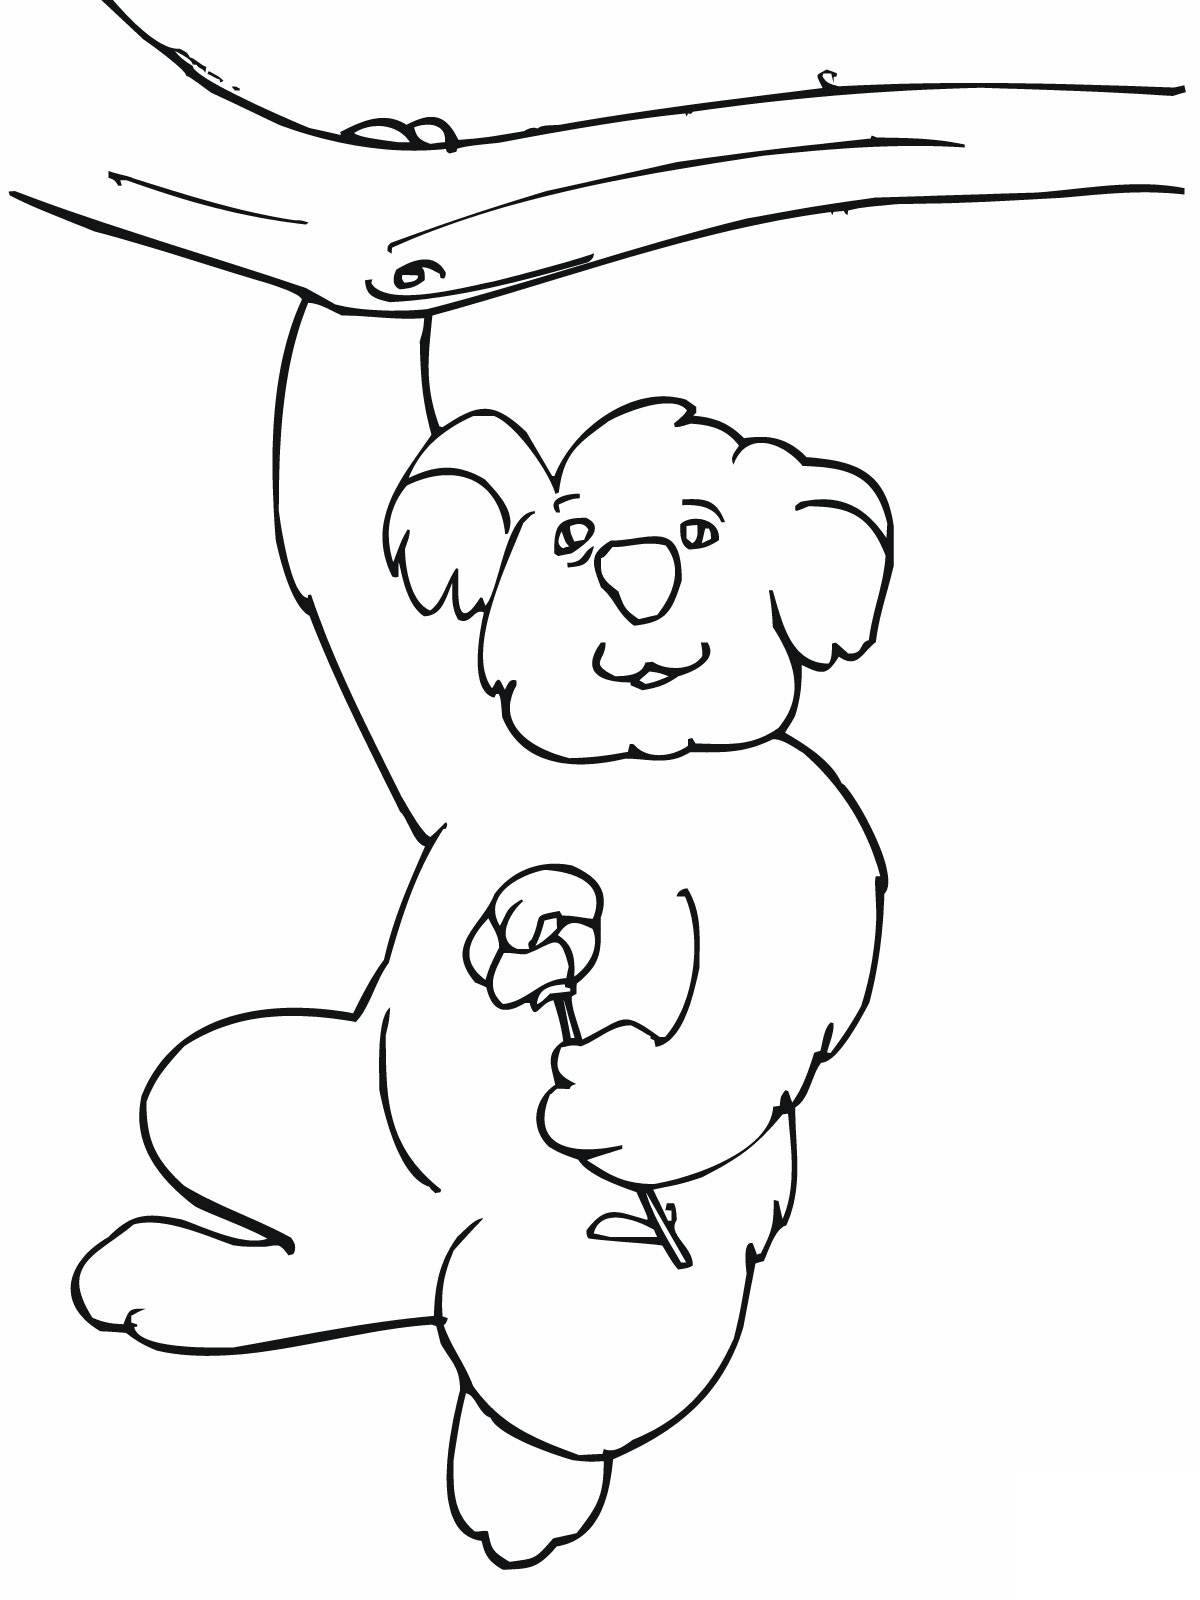 1200x1600 Free Printable Koala Coloring Pages For Kids